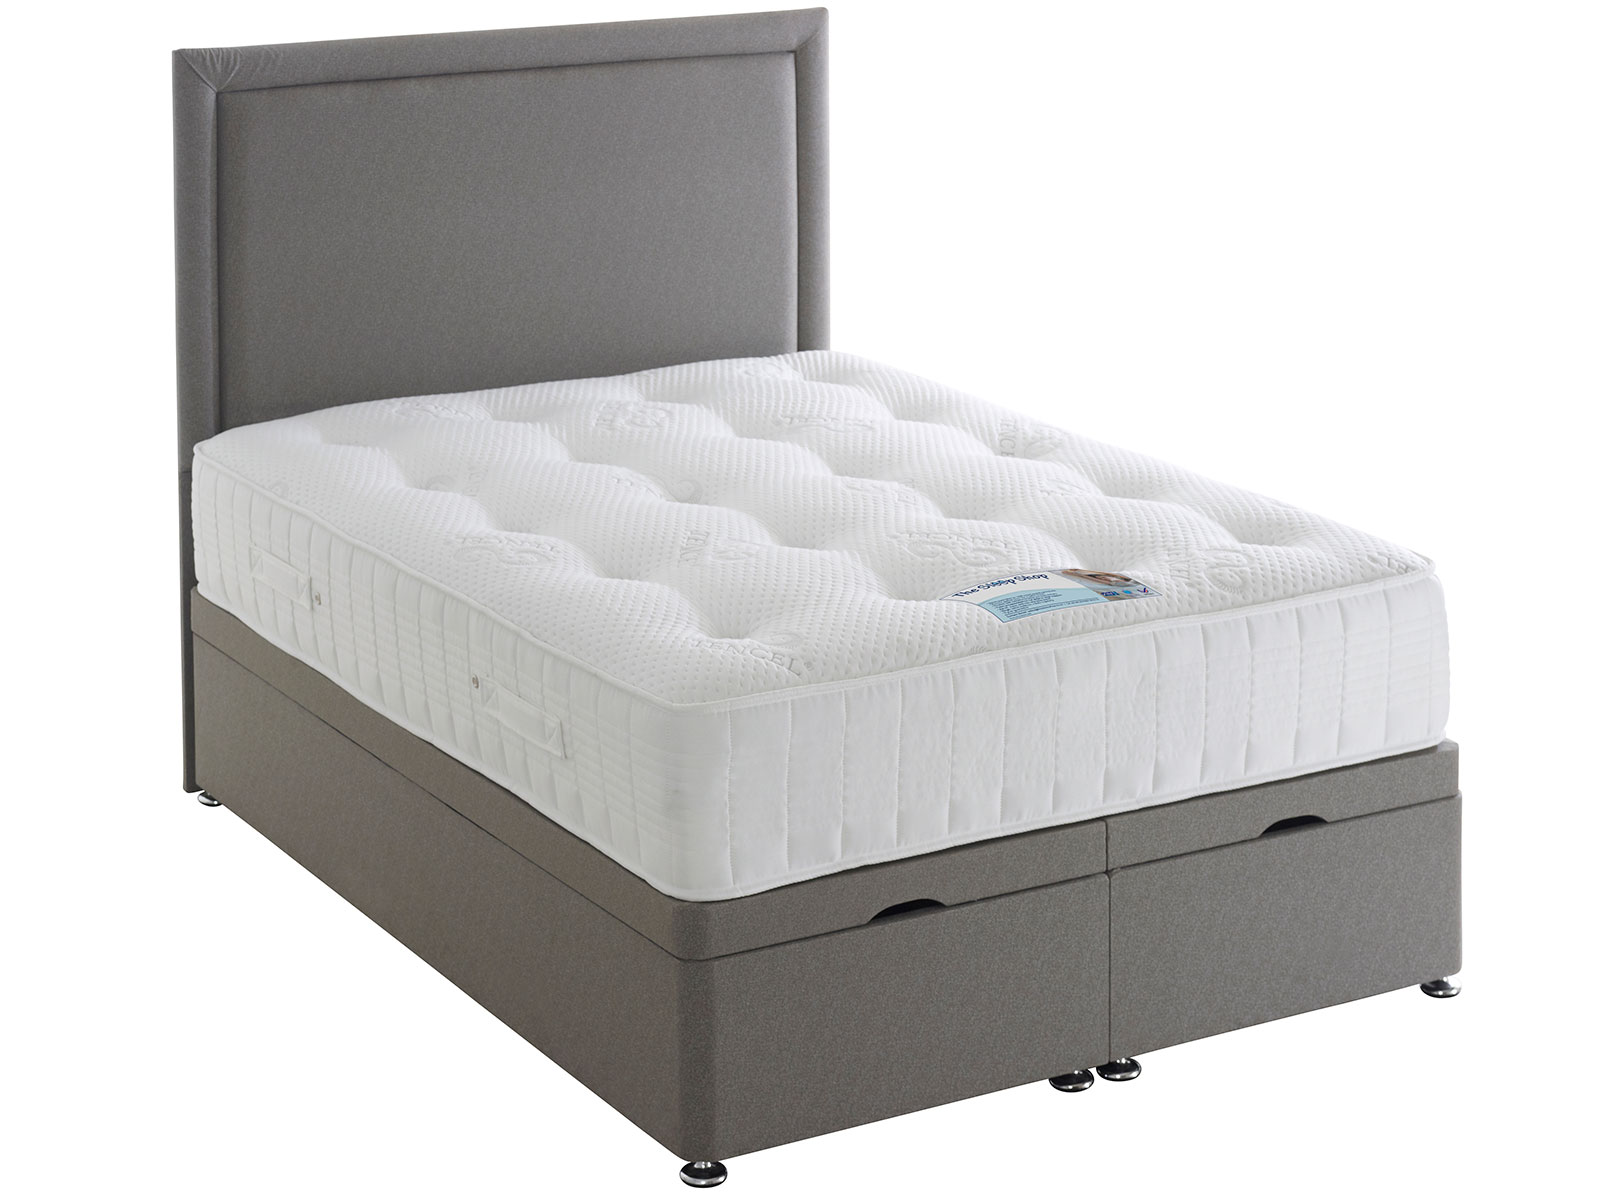 4ft6 Double Sleep Shop Tencel 1000 Supreme Mattress From